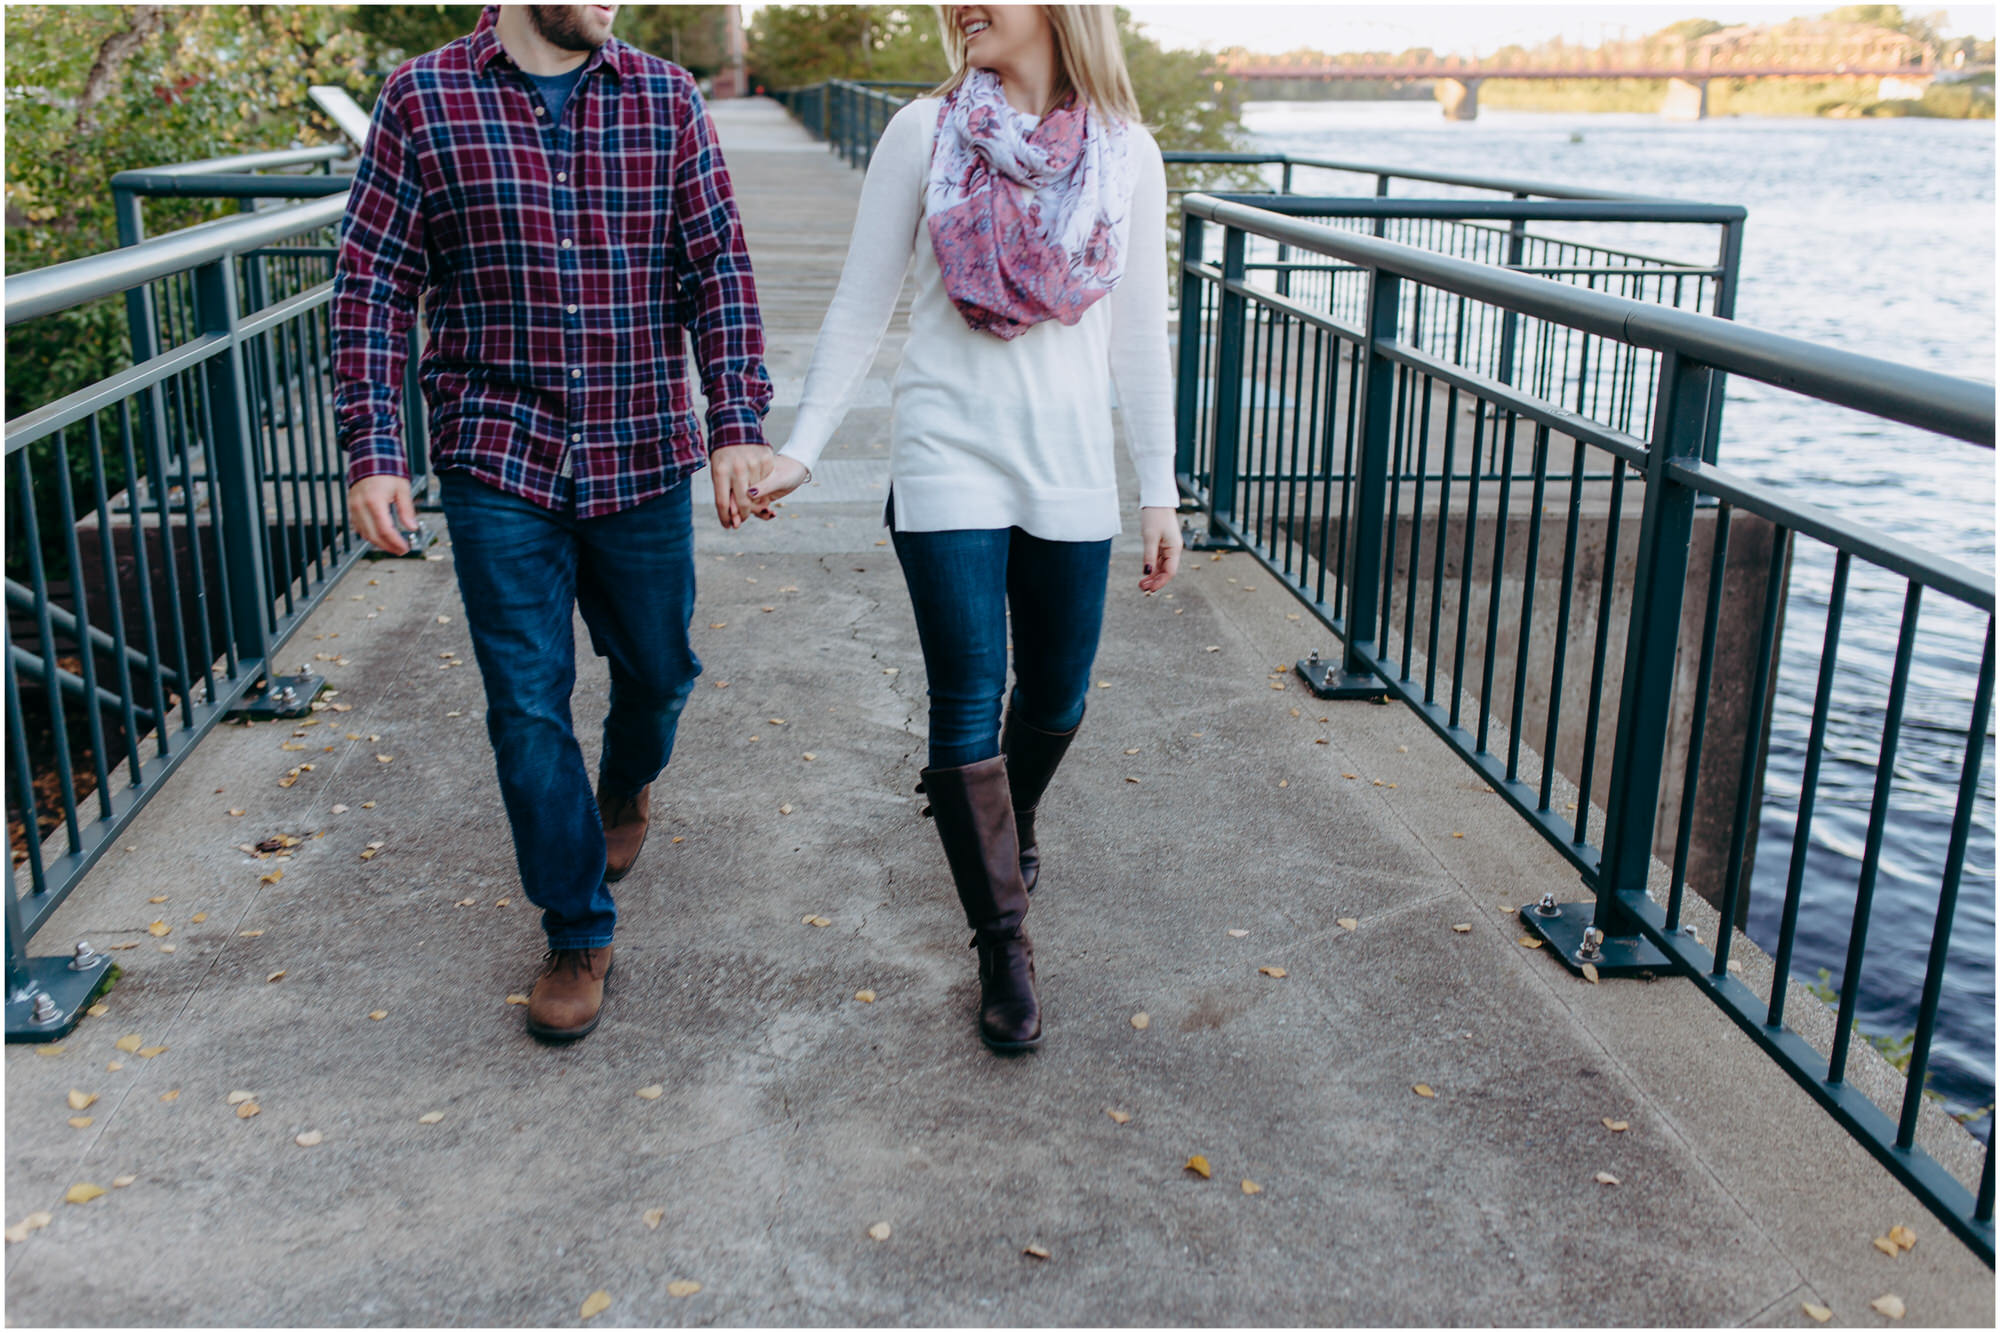 Adventurous couple walks hand-in-hand along the riverside for the engagement photos - by New Hampshire wedding photographer Ashleigh Laureen Photography in Lowell, Massachusetts